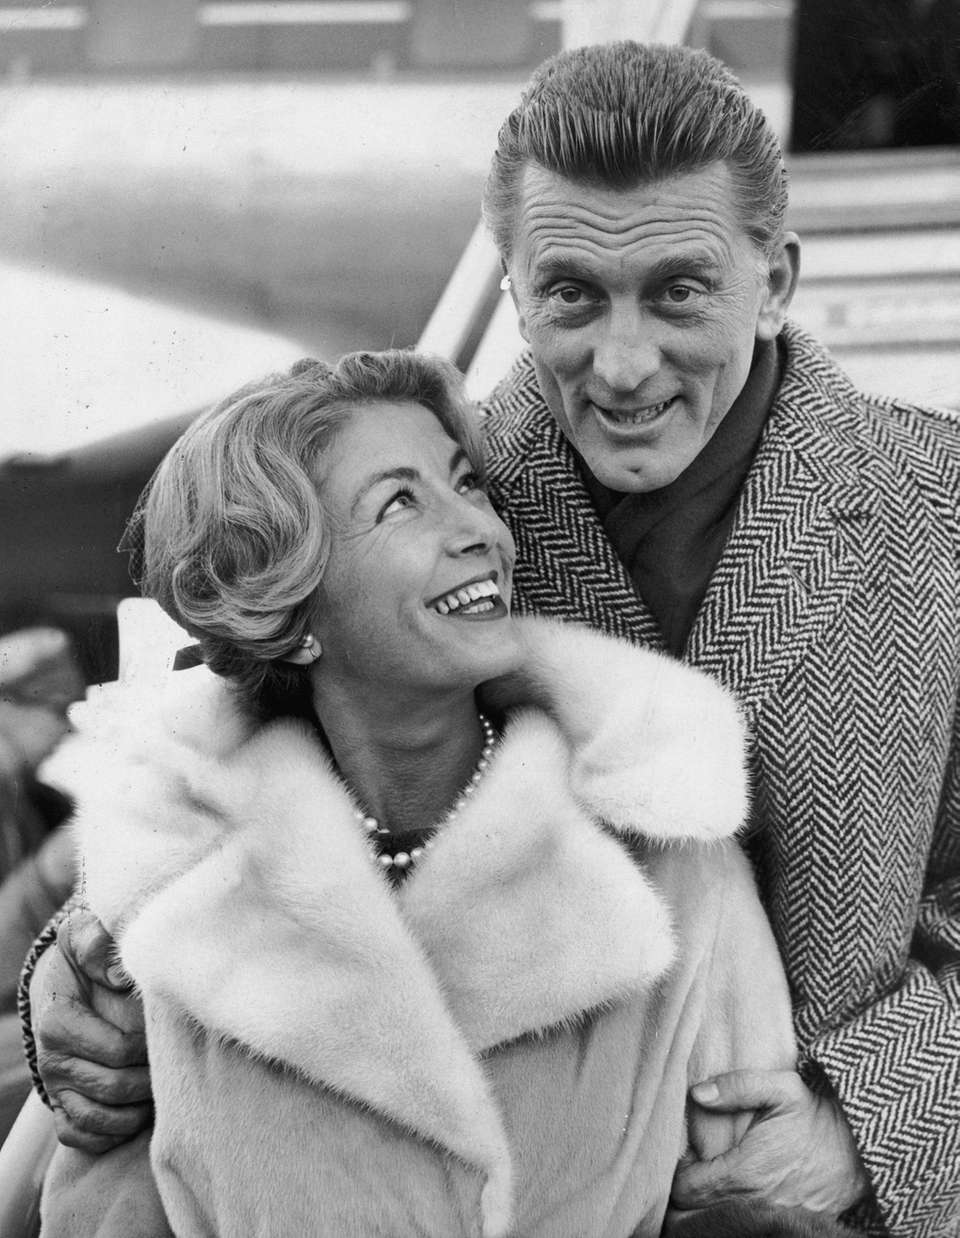 5th December 1960: Kirk Douglas and his wife